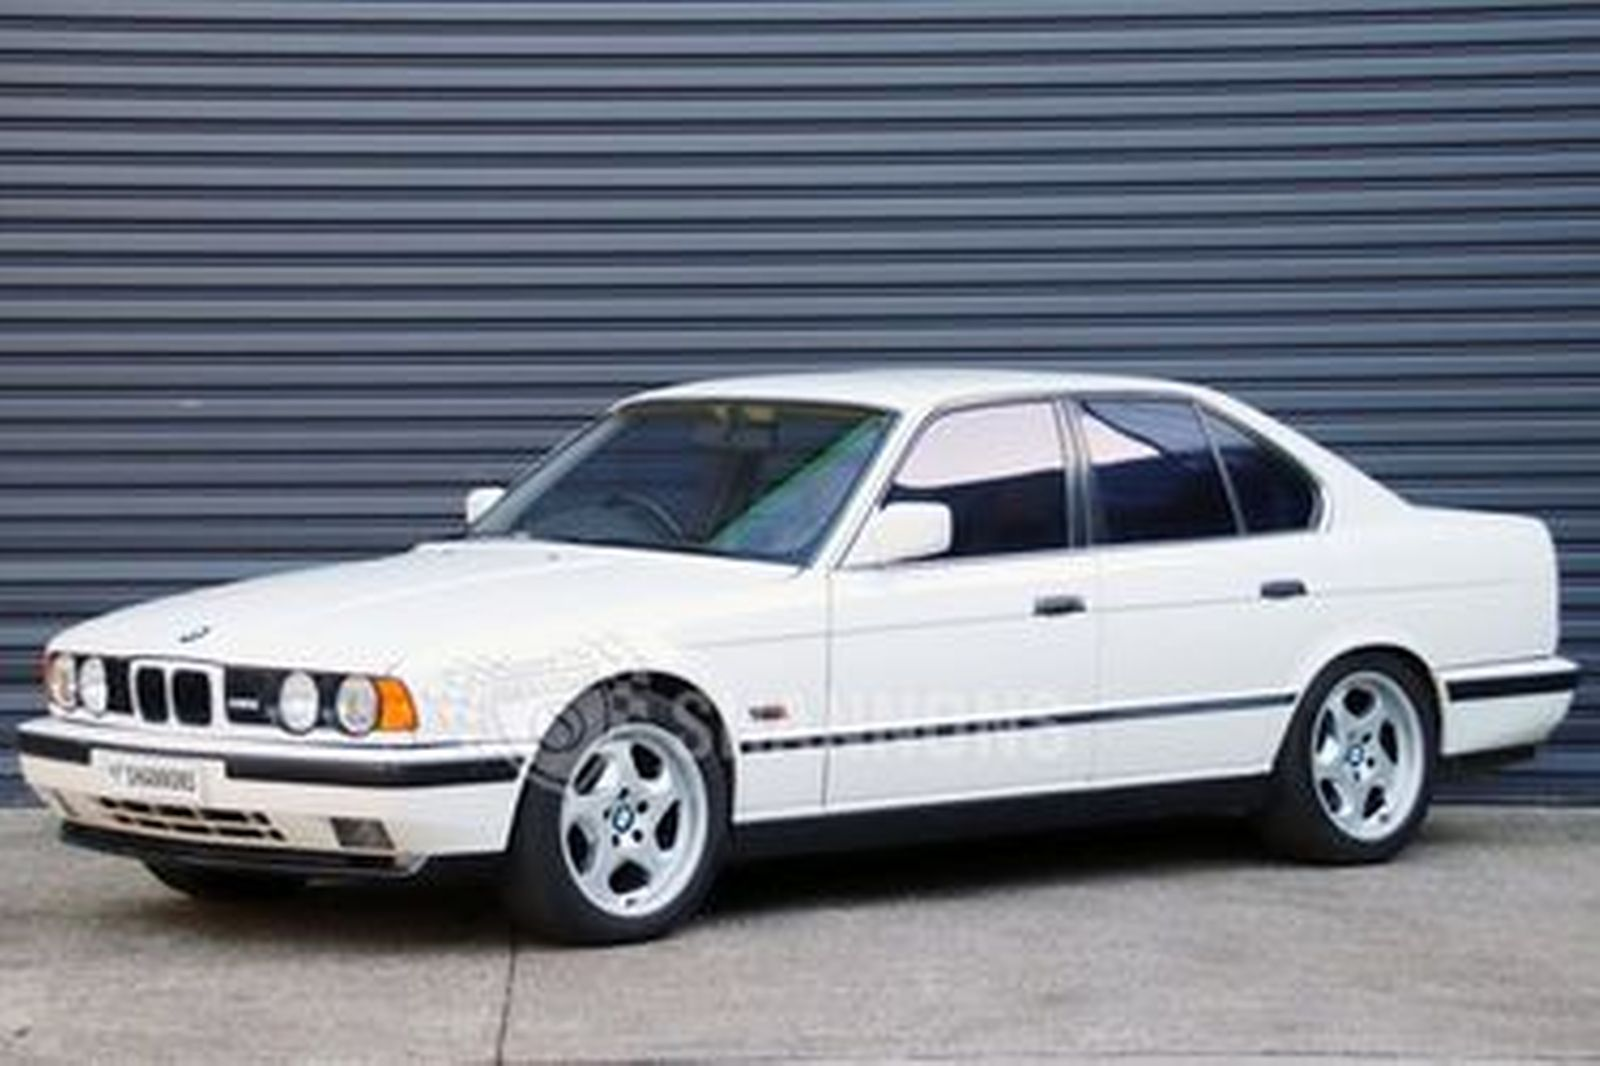 sold bmw m5 e34 saloon auctions lot 19 shannons. Black Bedroom Furniture Sets. Home Design Ideas